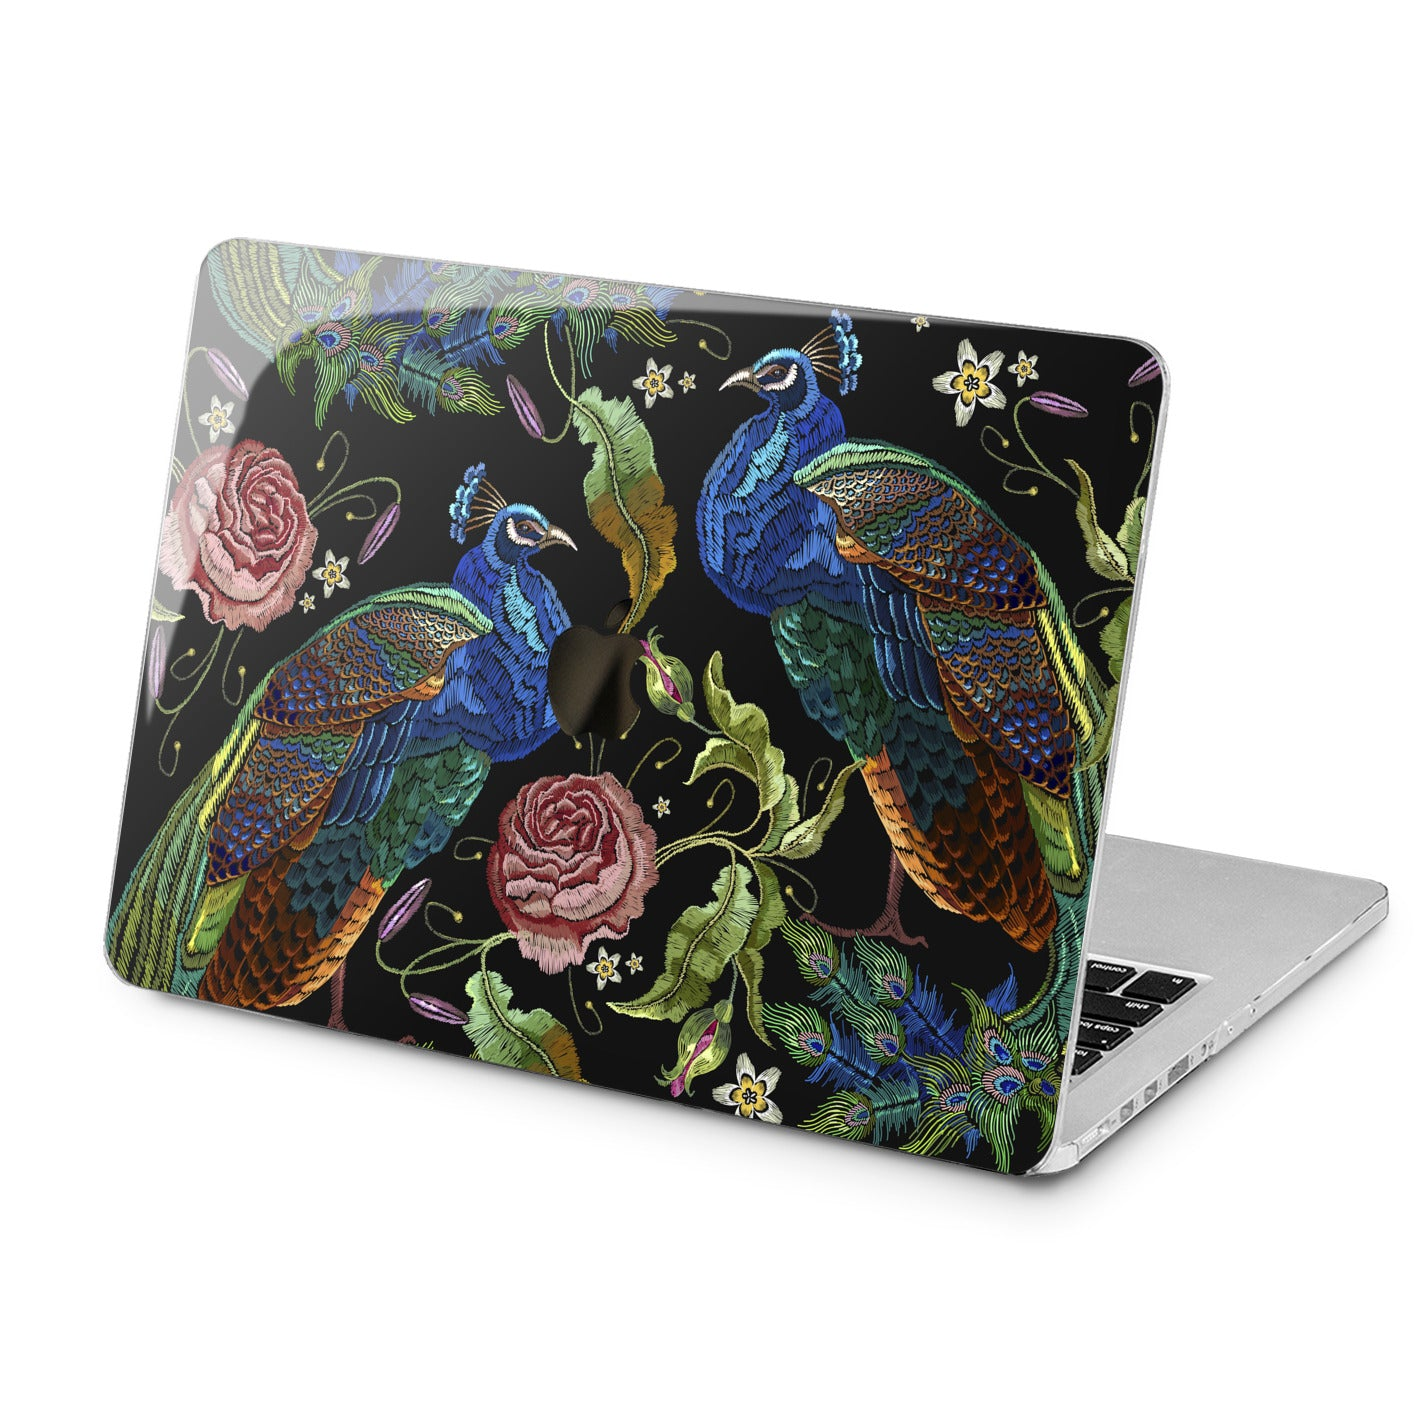 Lex Altern Lex Altern Floral Peacock Case for your Laptop Apple Macbook.